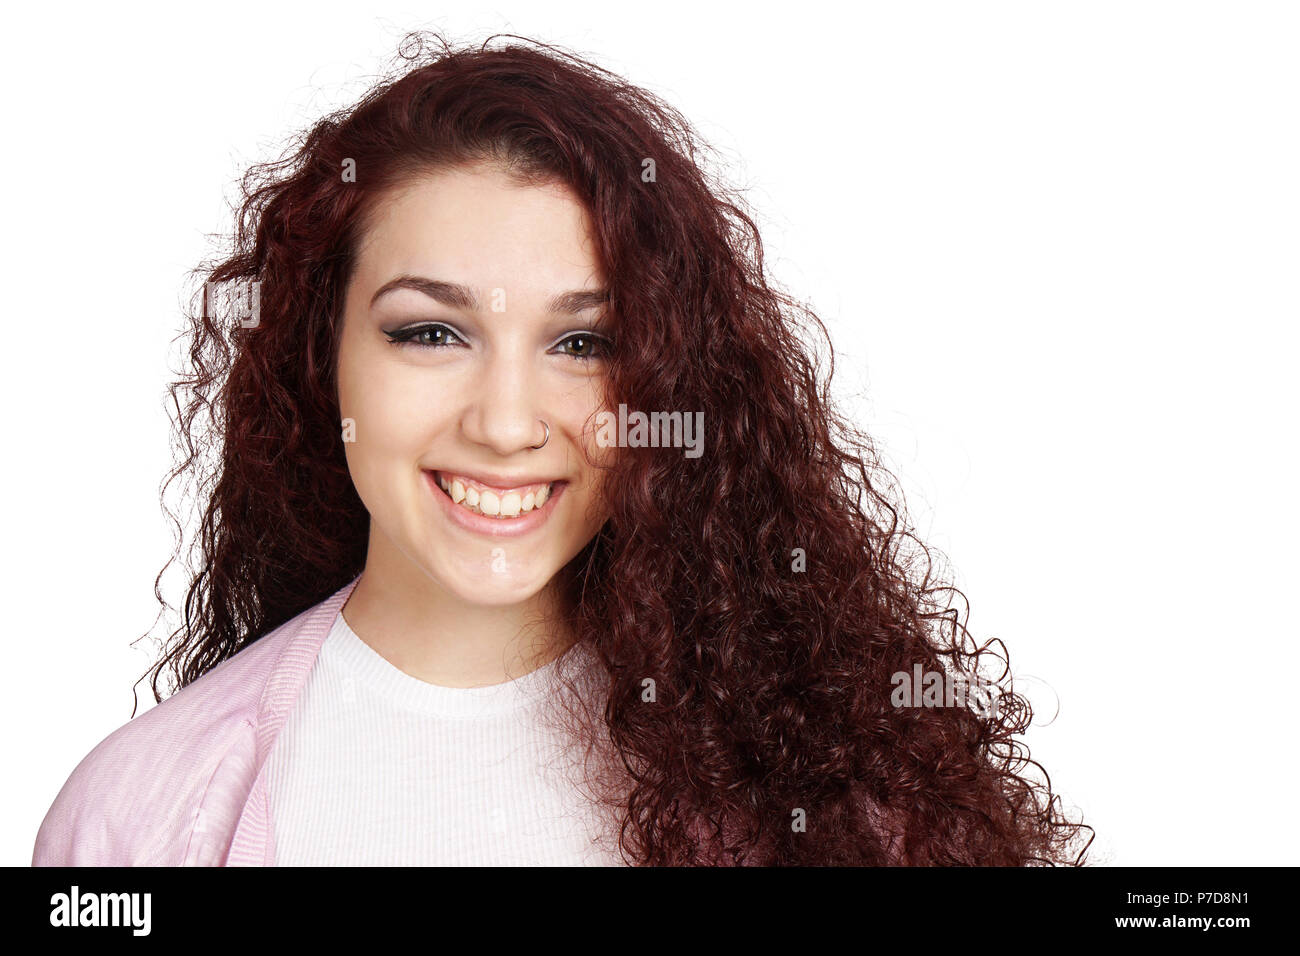 happy teenage girl with long curly hair and toothy smile isolated on white - Stock Image